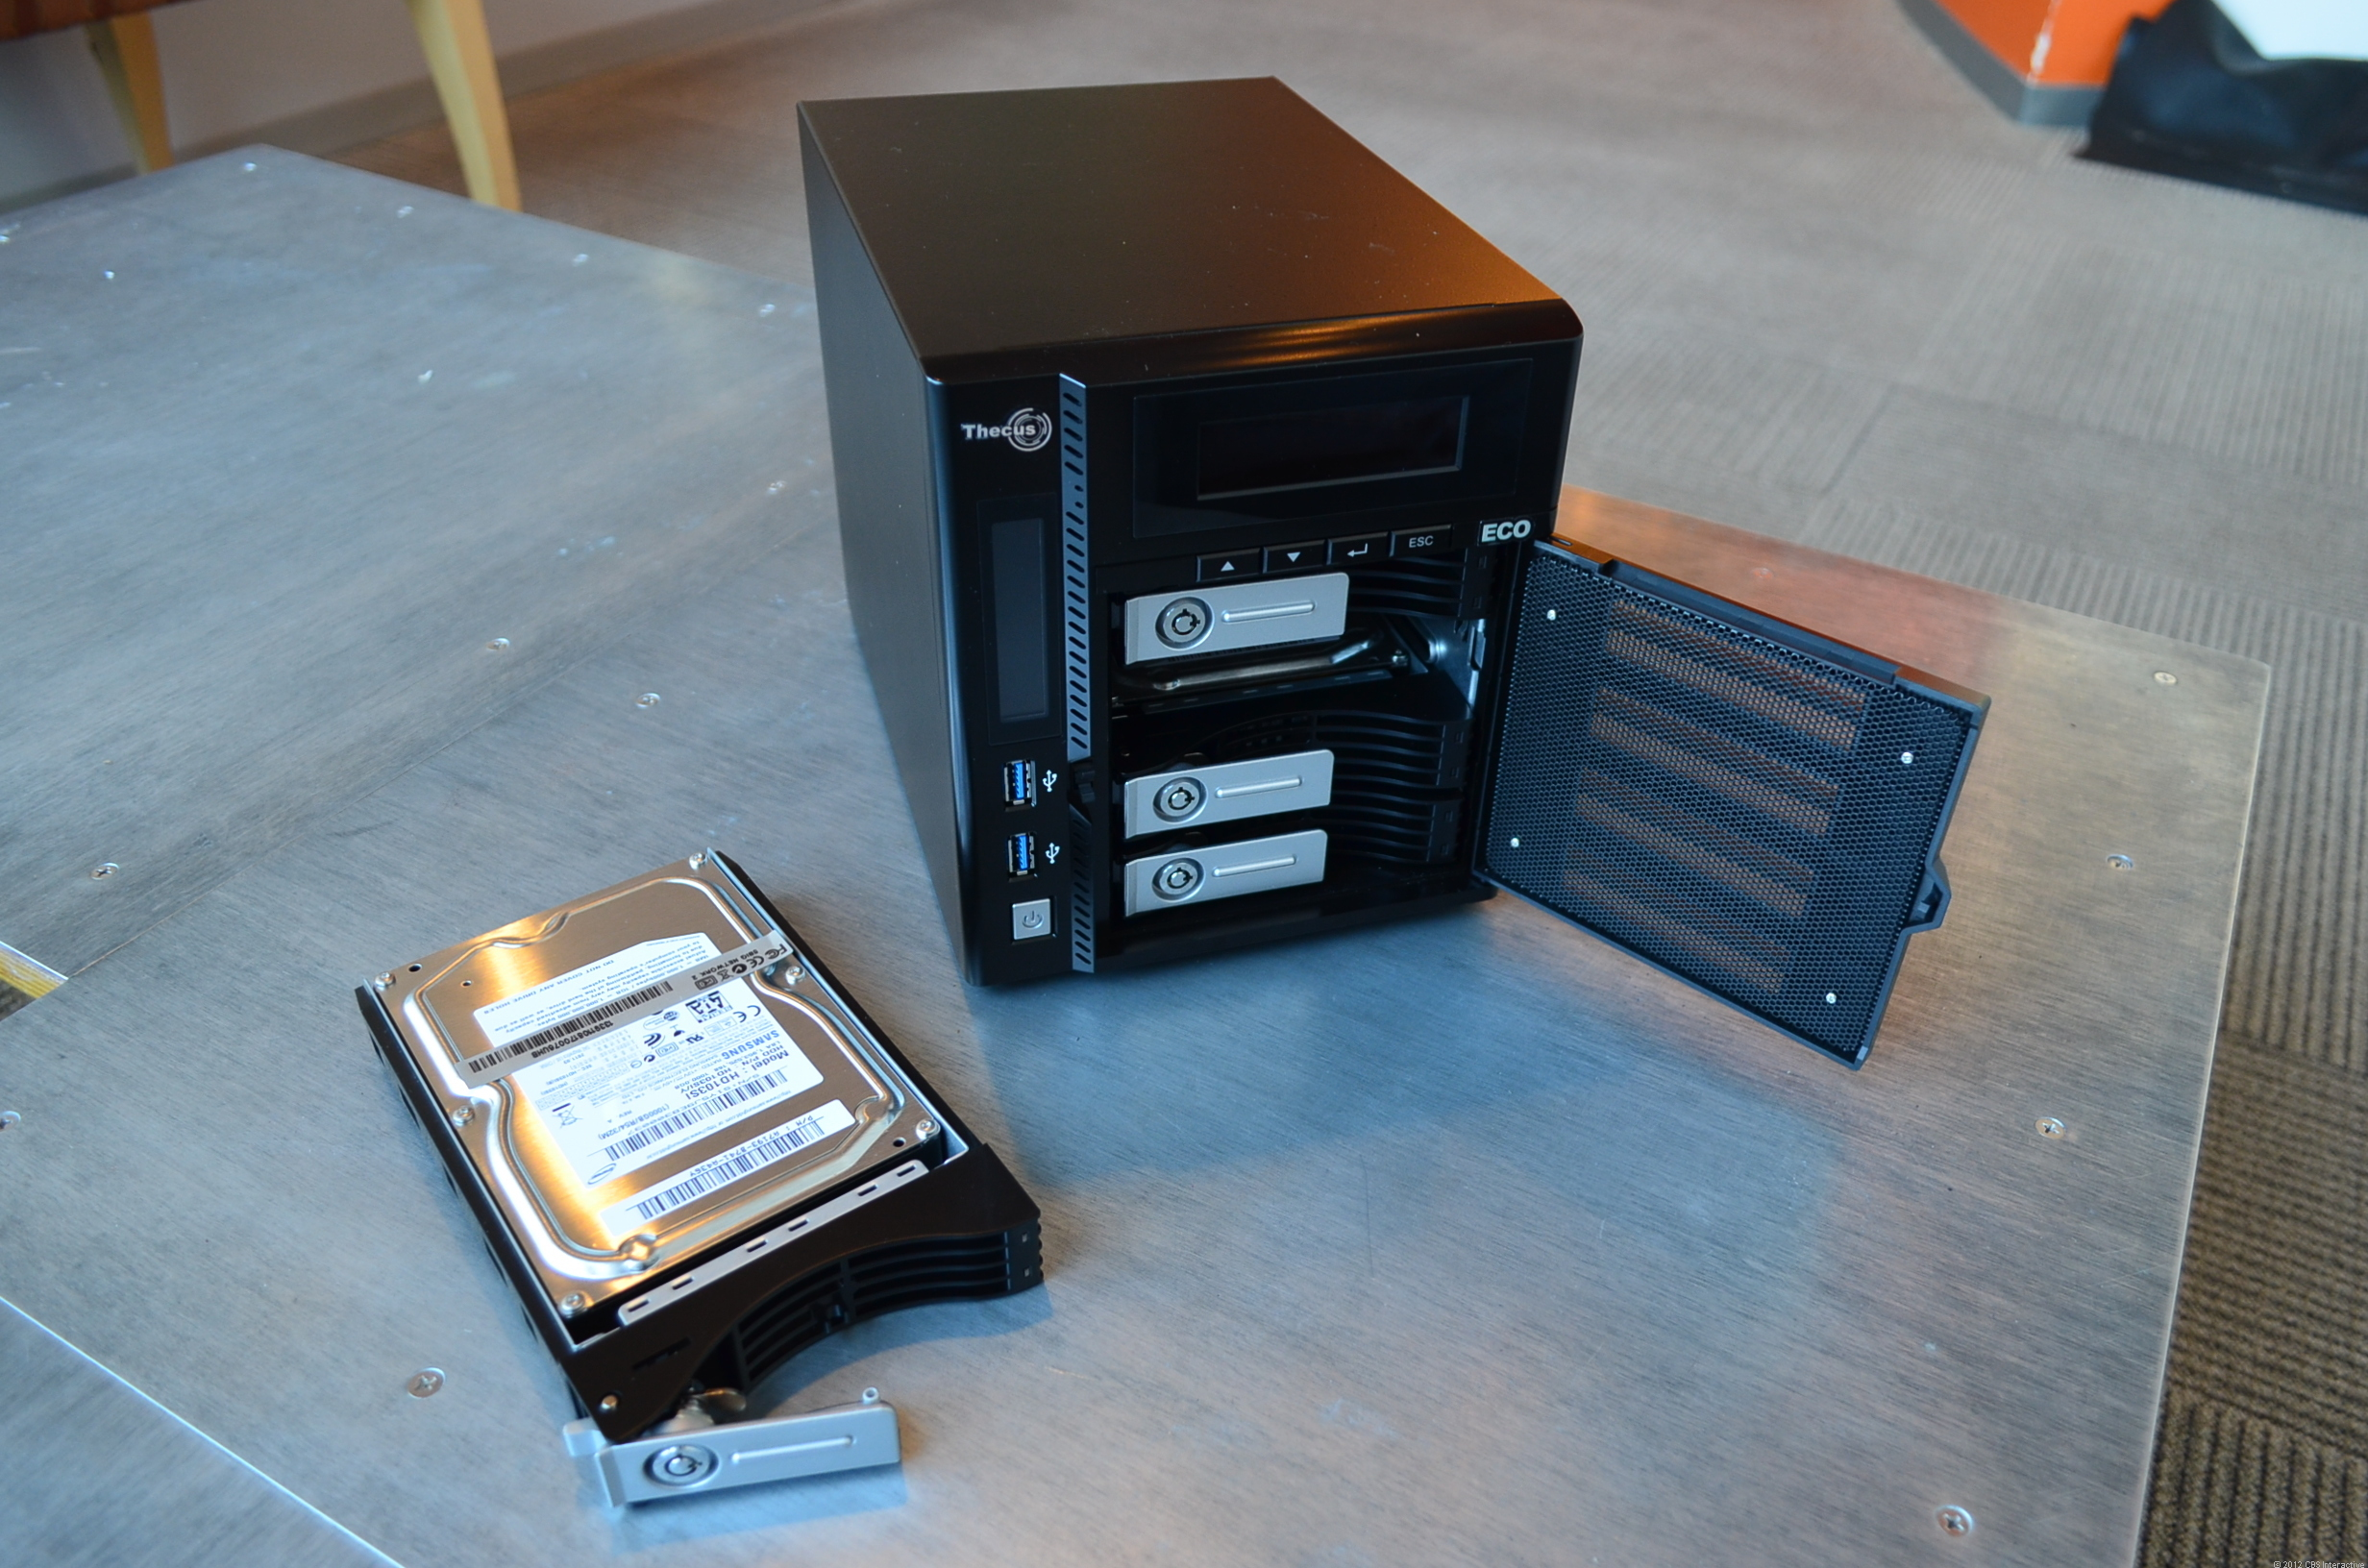 It's very easy to install and replace hard drives with the N4800Eco.